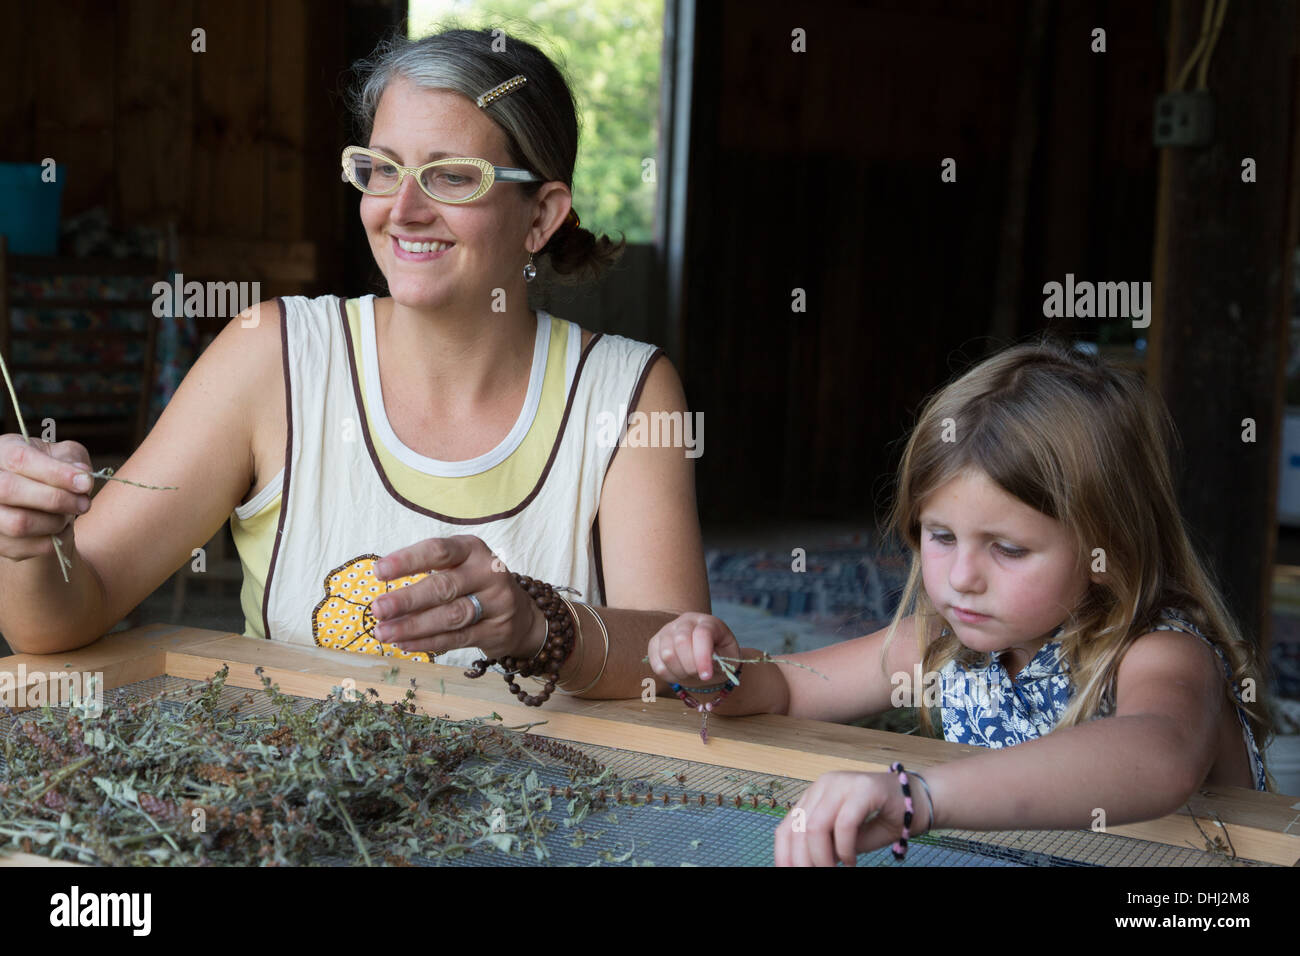 Mother and daughter sorting dried herbs - Stock Image